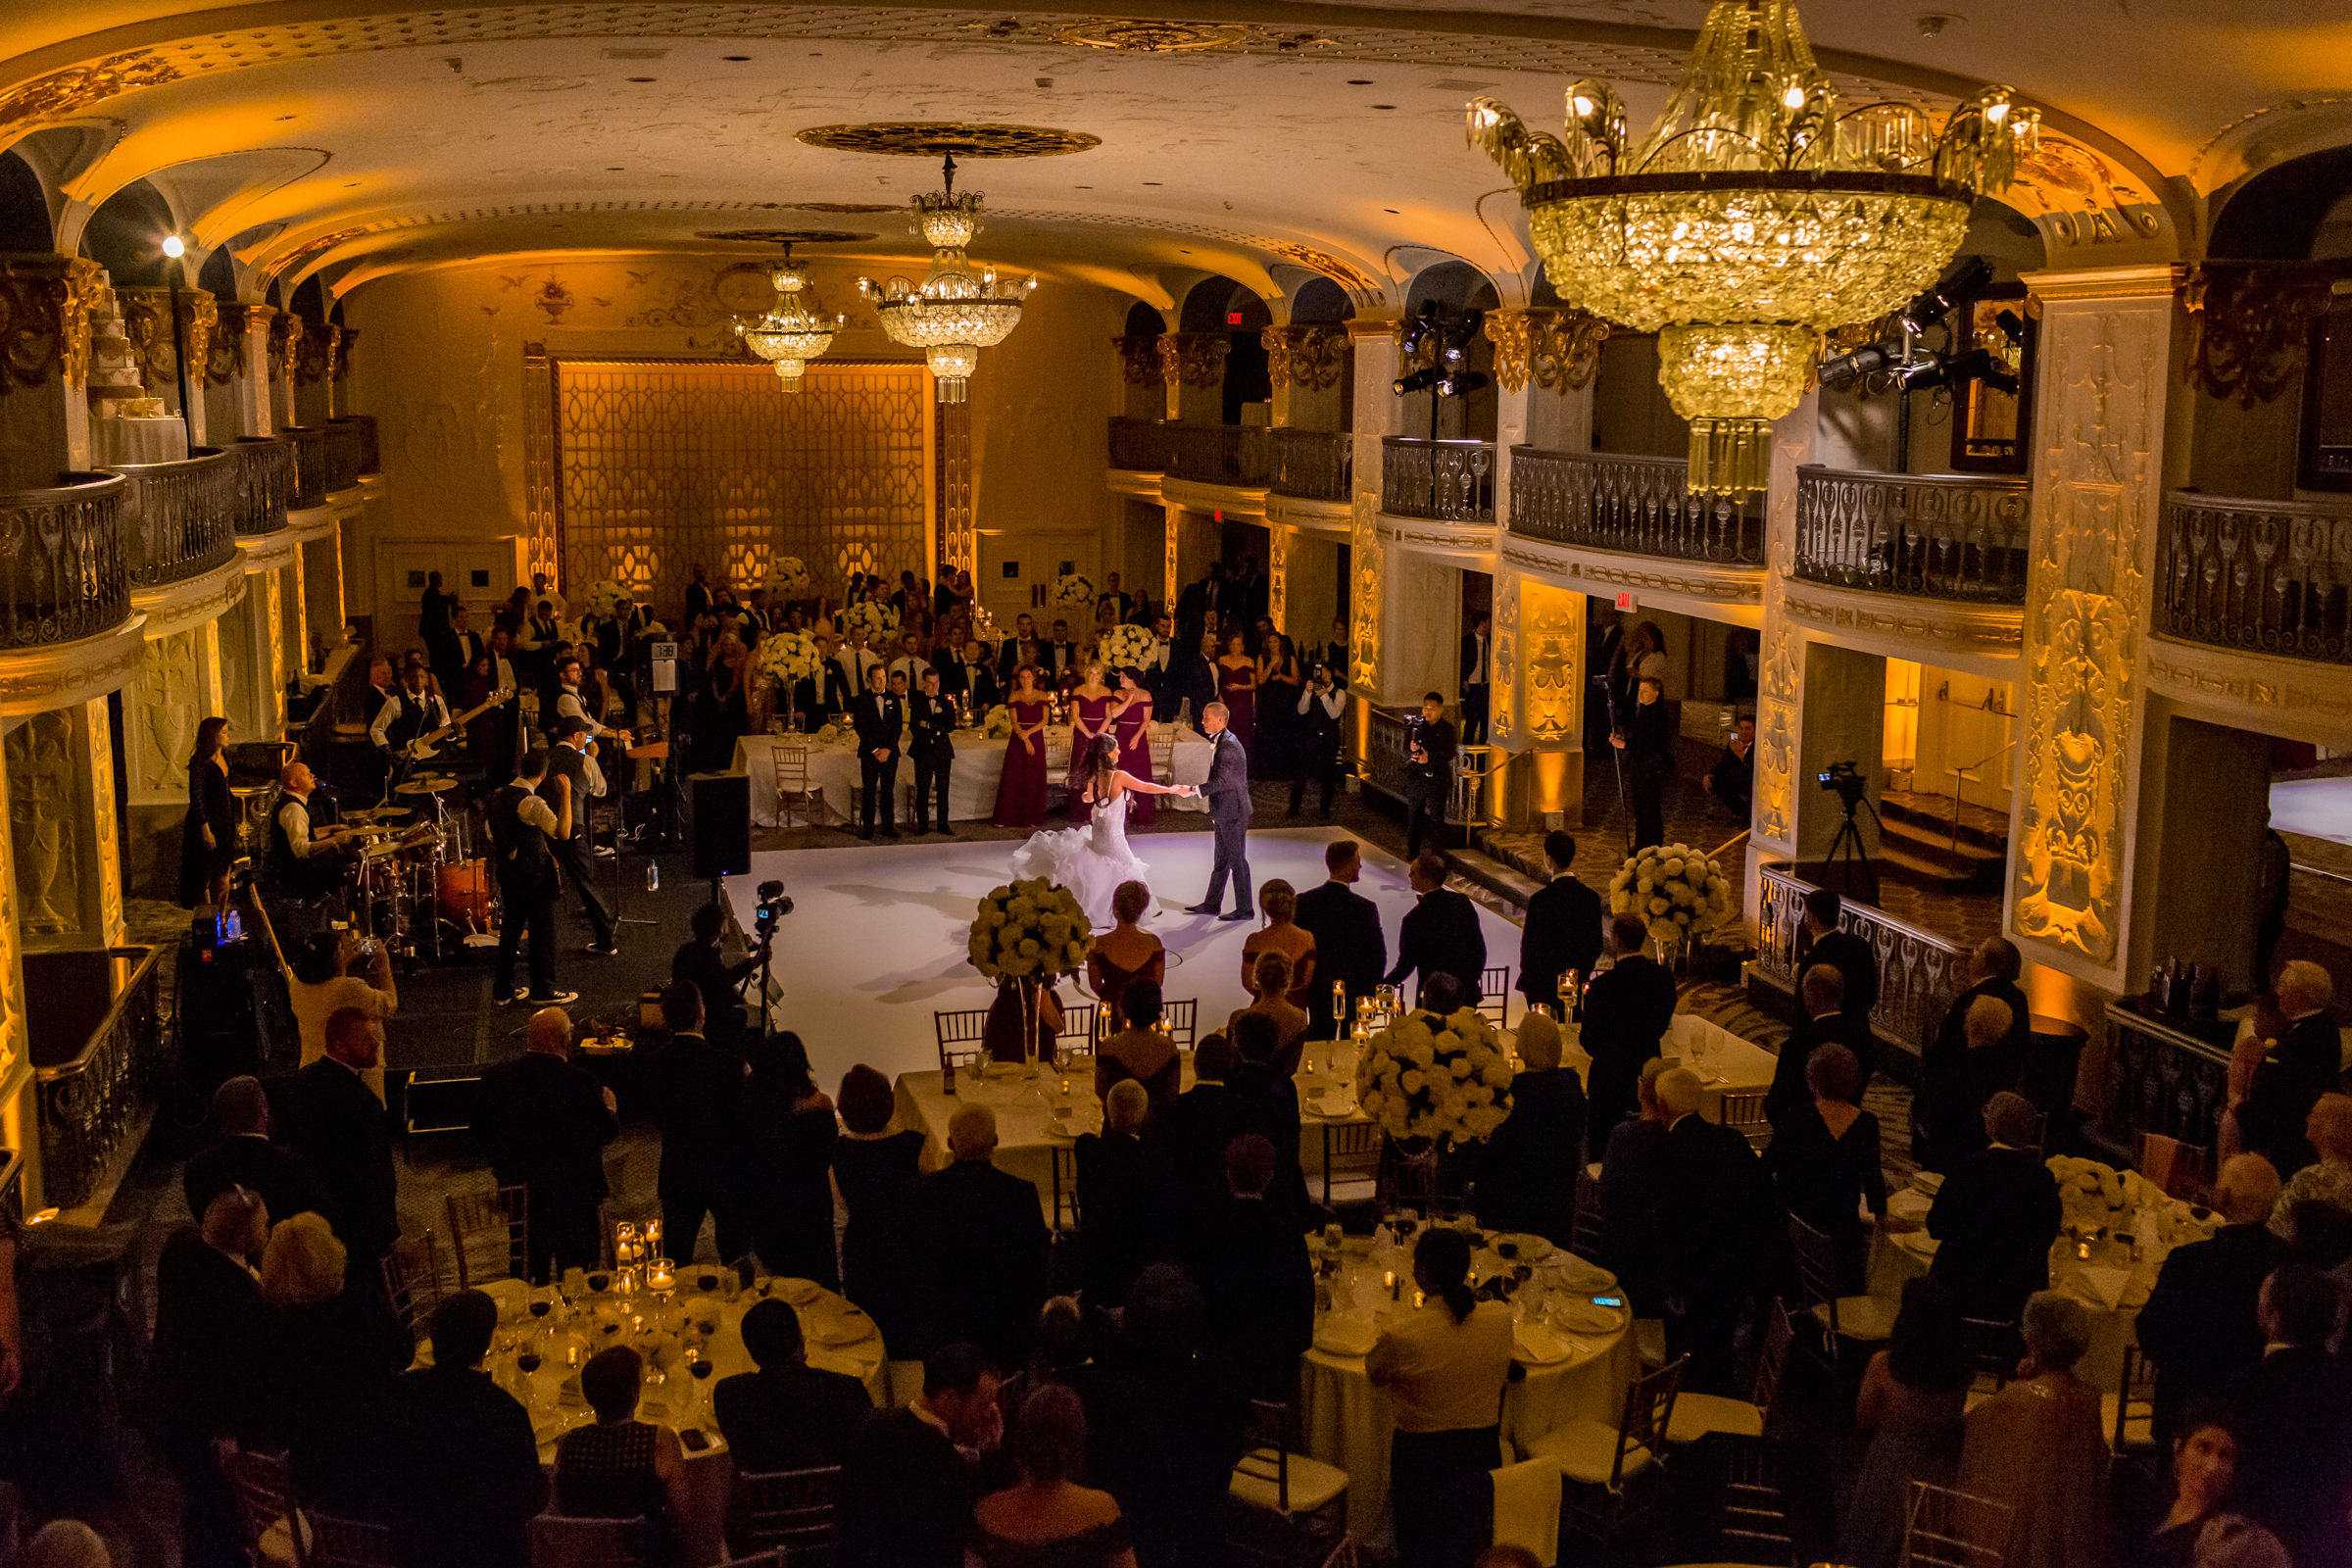 Balcony view of first dance amidst standing guests - photo by Procopio Photography